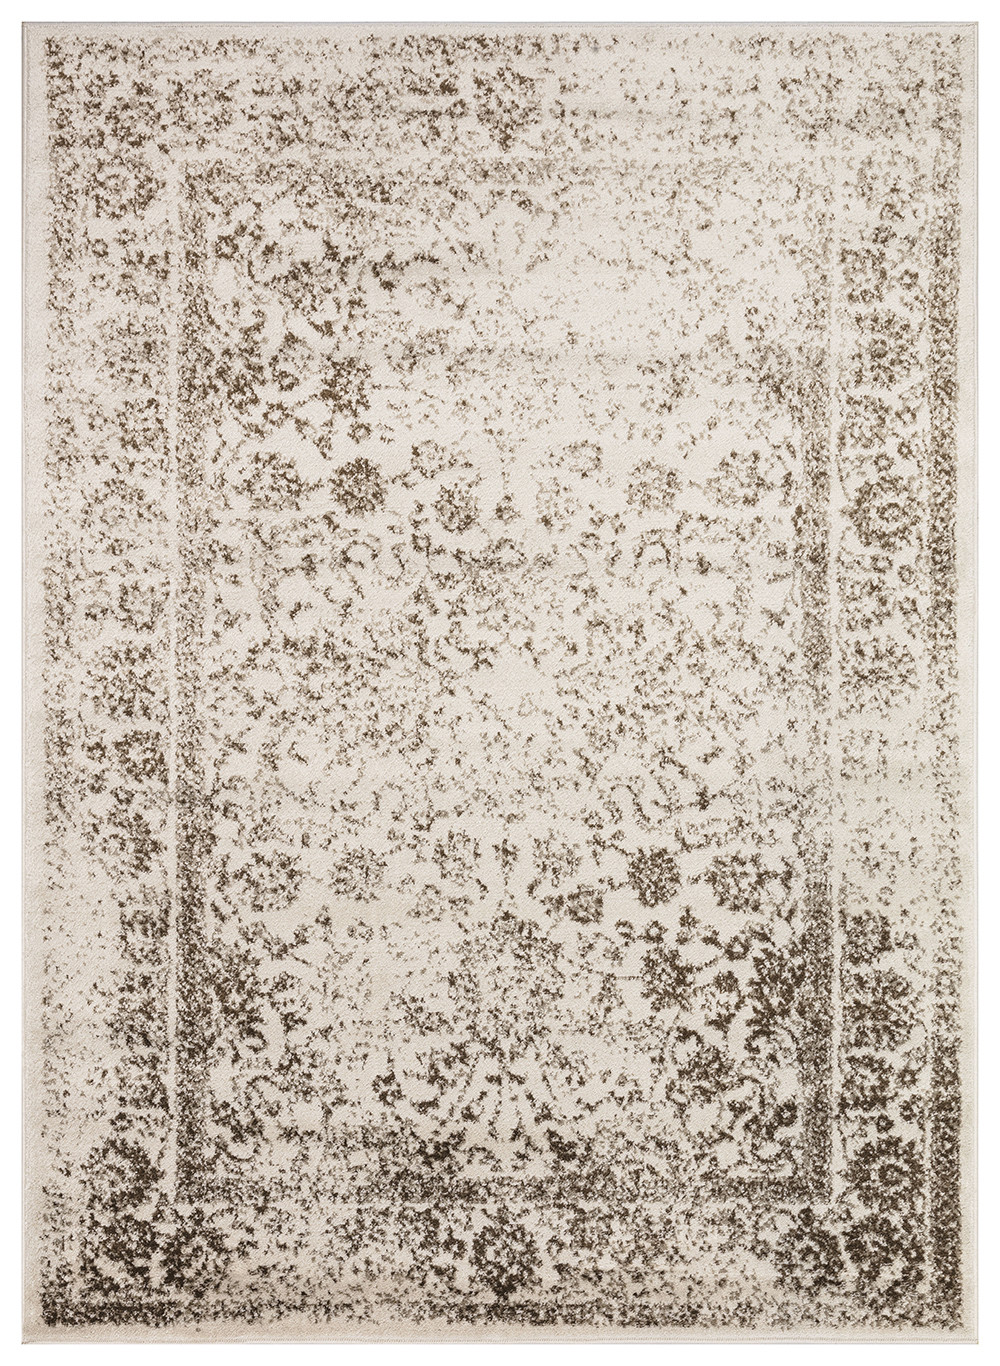 Vintage Metallregal Regal Collection Vintage Oriental Medallion Area Rug - 172 Brown & Dark Beige – Beverly Rug